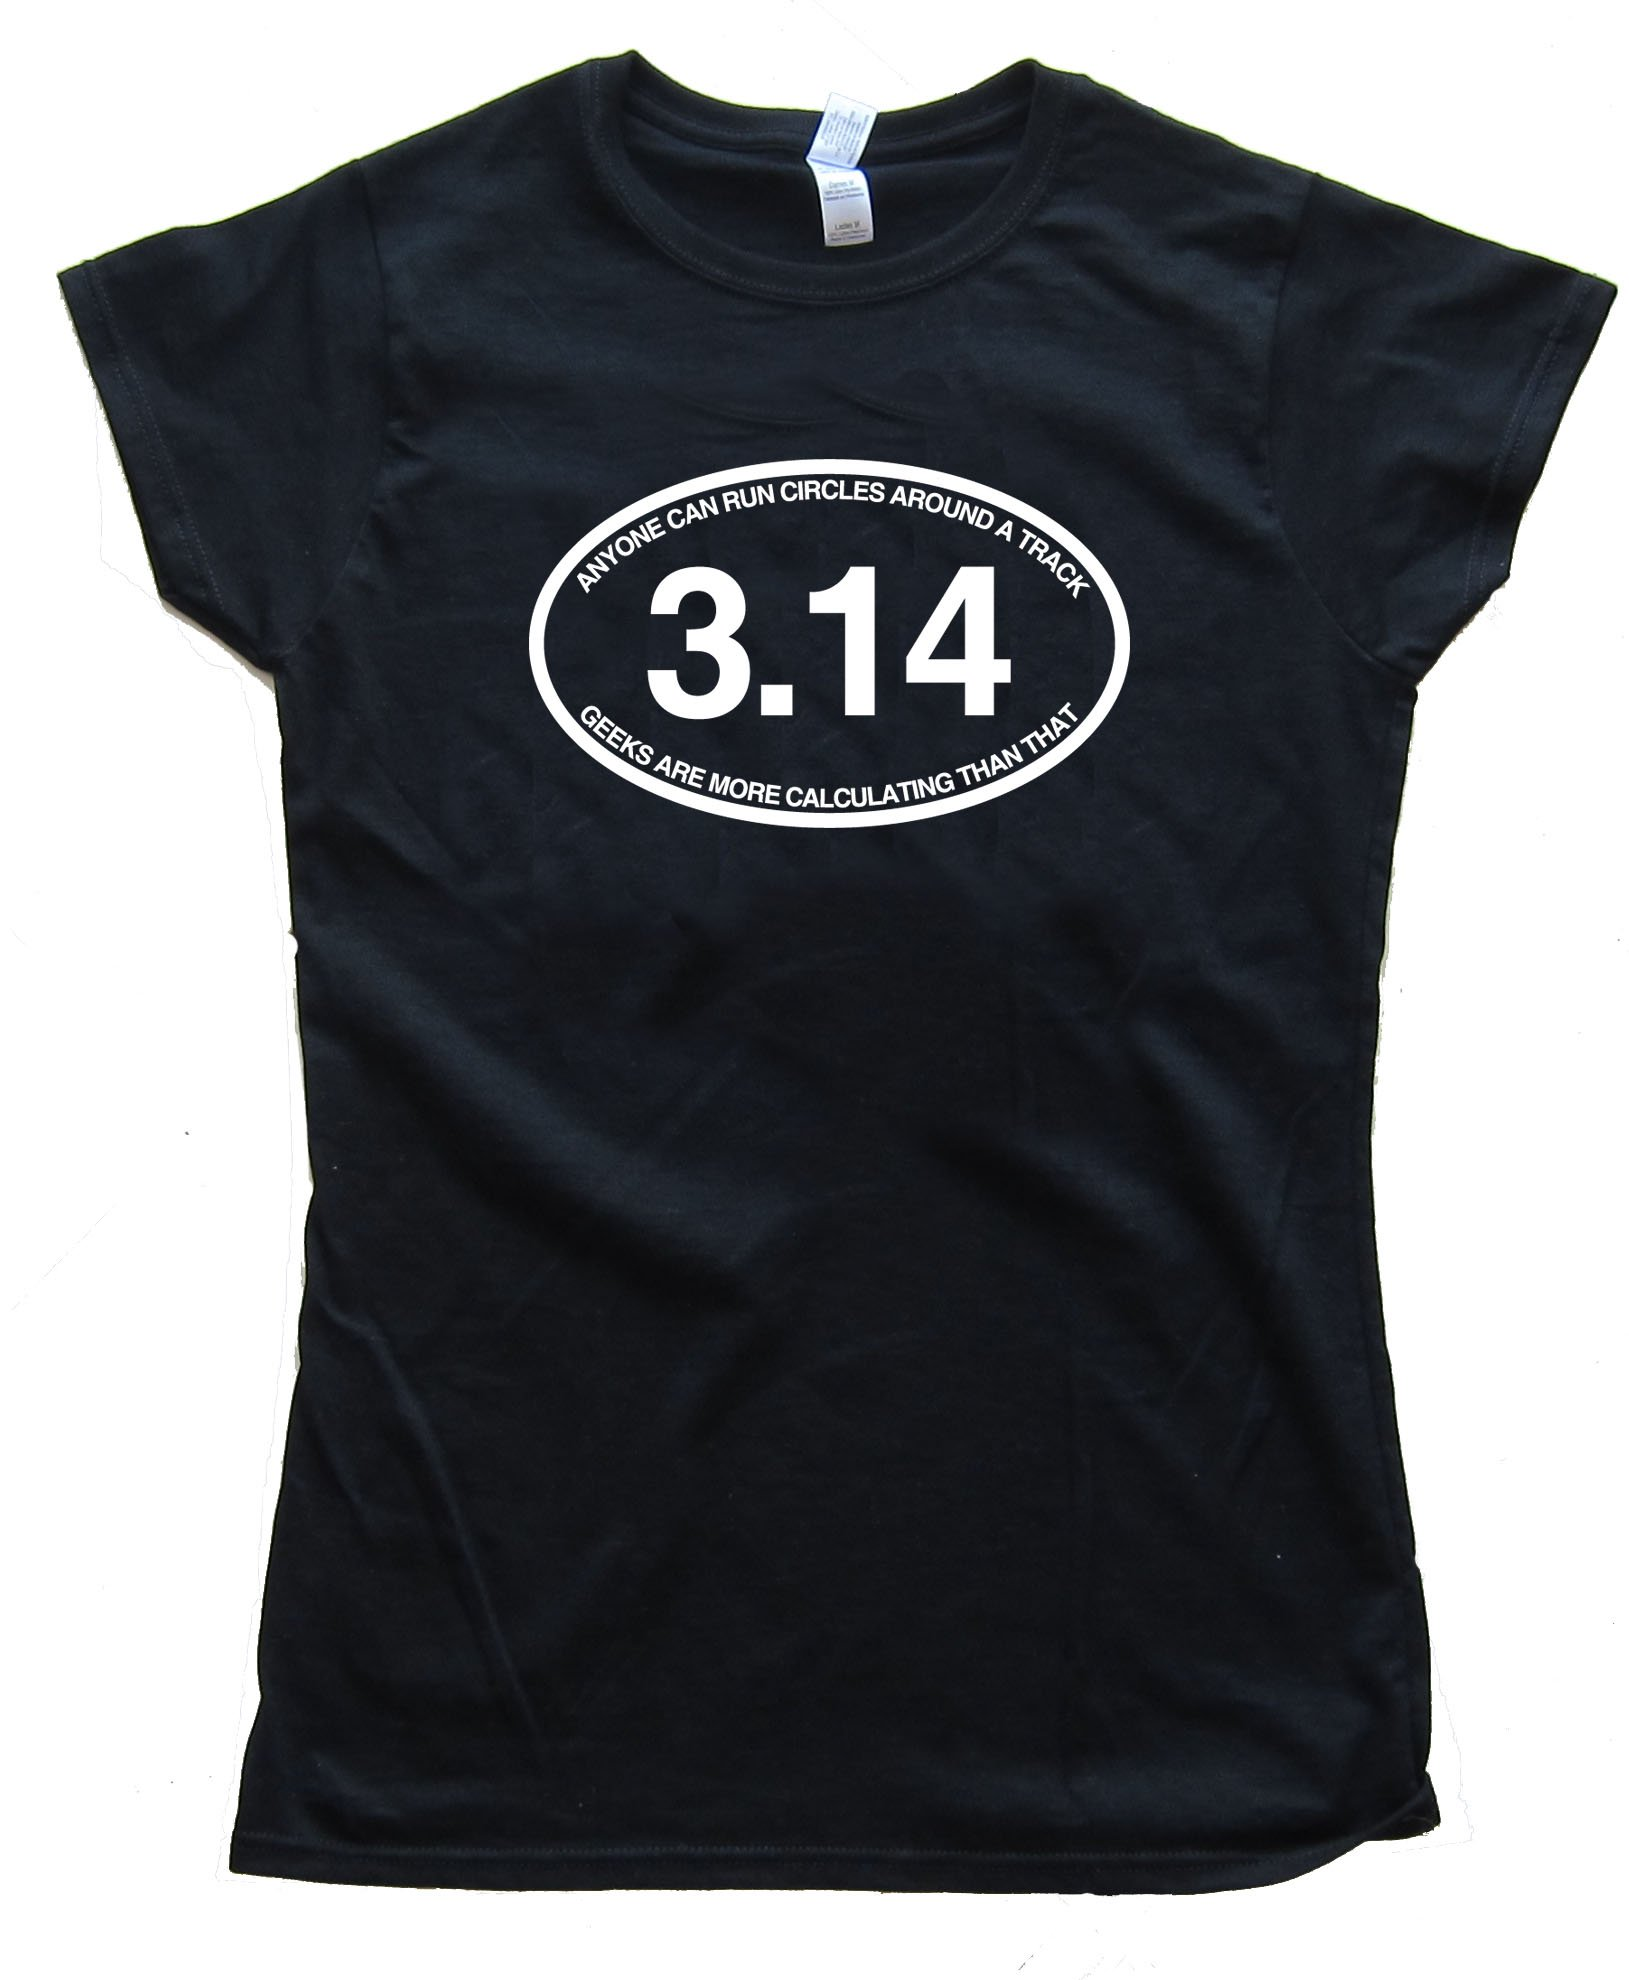 Womens 3.14 Anyone Can Run Circles Around A Track - Tee Shirt